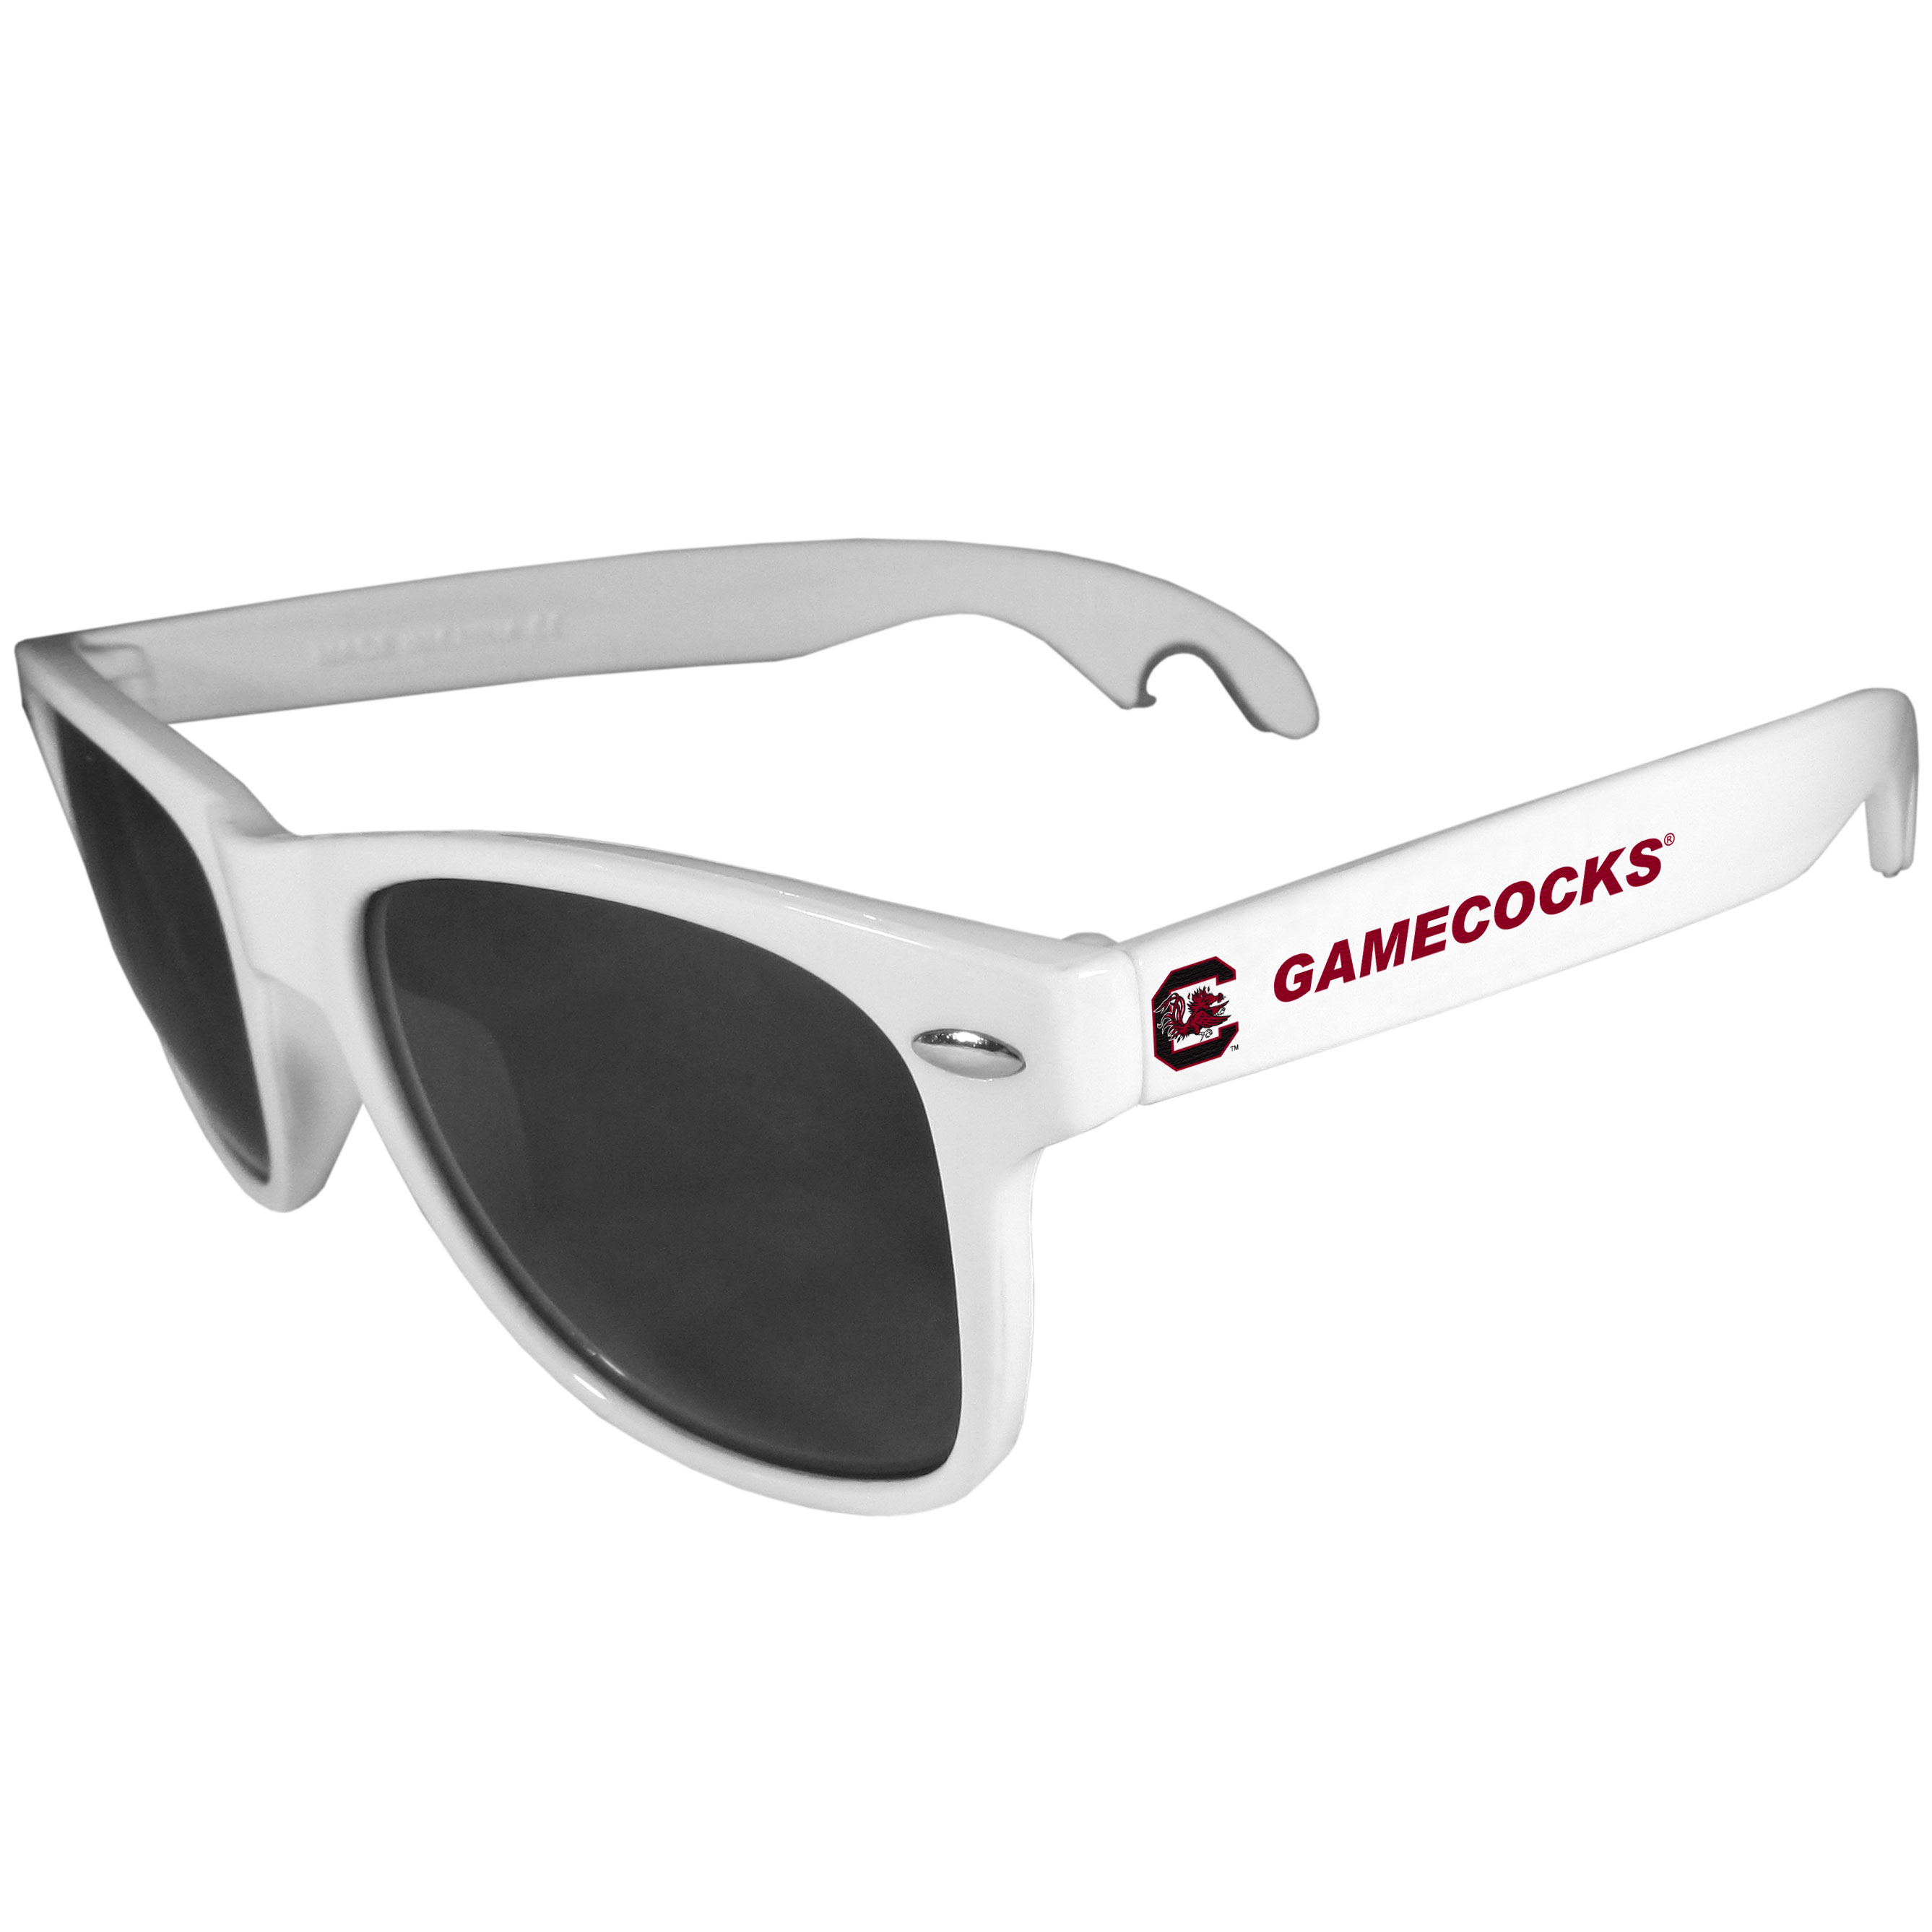 S. Carolina Gamecocks Beachfarer Bottle Opener Sunglasses, White - Seriously, these sunglasses open bottles! Keep the party going with these amazing S. Carolina Gamecocks bottle opener sunglasses. The stylish retro frames feature team designs on the arms and functional bottle openers on the end of the arms. Whether you are at the beach or having a backyard BBQ on game day, these shades will keep your eyes protected with 100% UVA/UVB protection and keep you hydrated with the handy bottle opener arms.